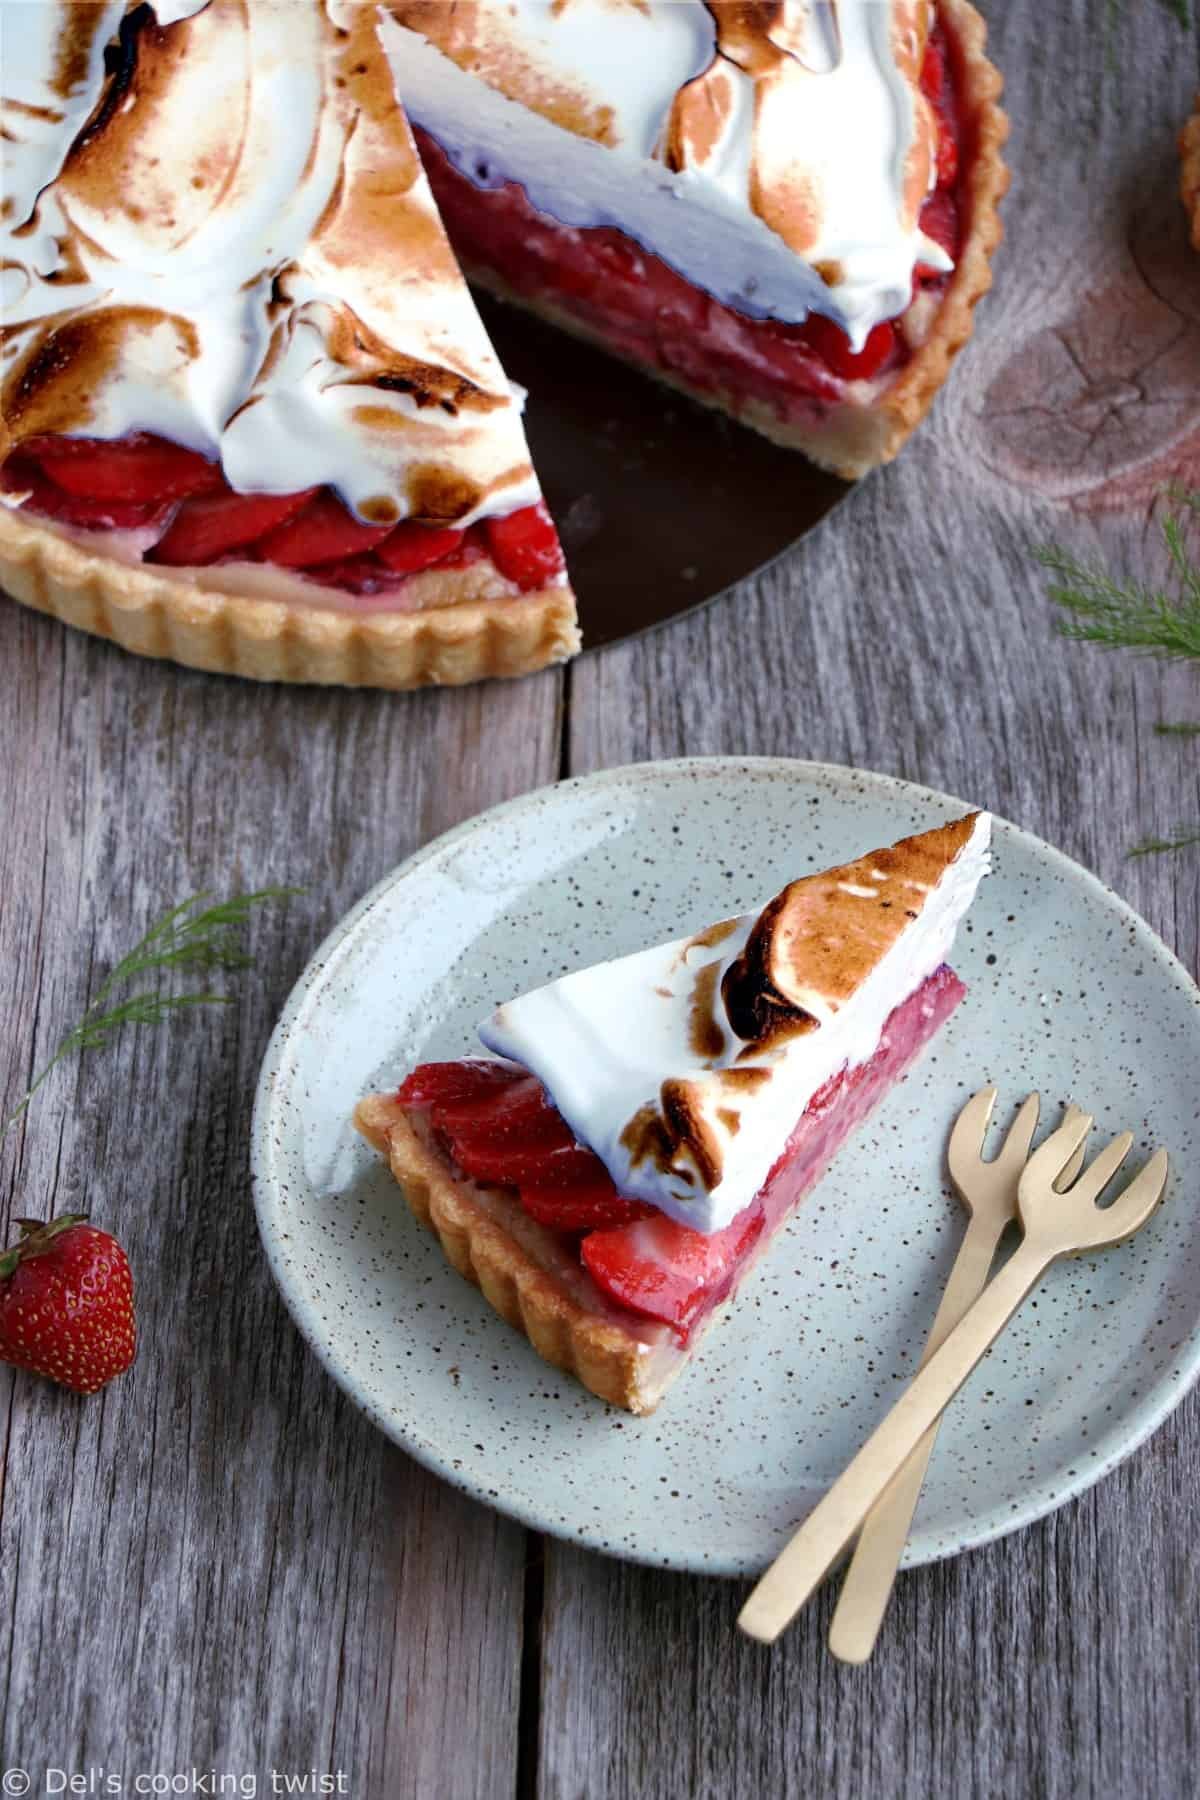 Meringue Strawberry Rhubarb Pie. Beautiful Strawberry Rhubarb Meringue Pie filled with a subtle almond cream is a perfect summer dessert with a great balance of sweetness and tartness. Simply delicious!